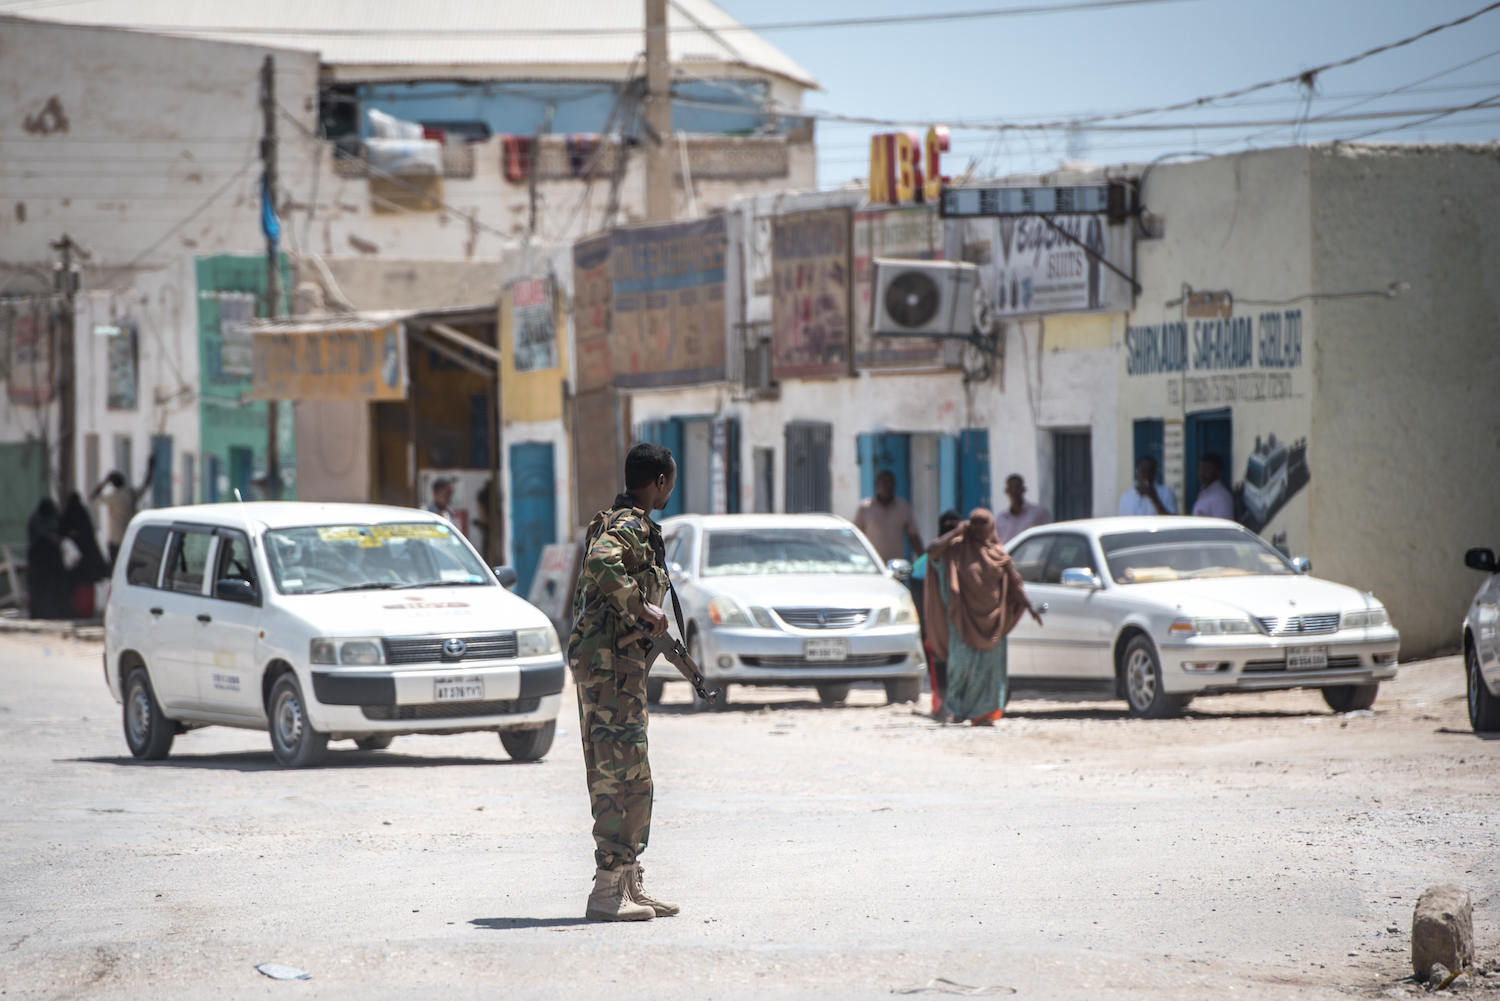 A Puntland police soldier directs traffic outside police headquarters in the economic hub city of Bossaso, Somalia, March 24, 2018. (J. Patinkin/VOA)